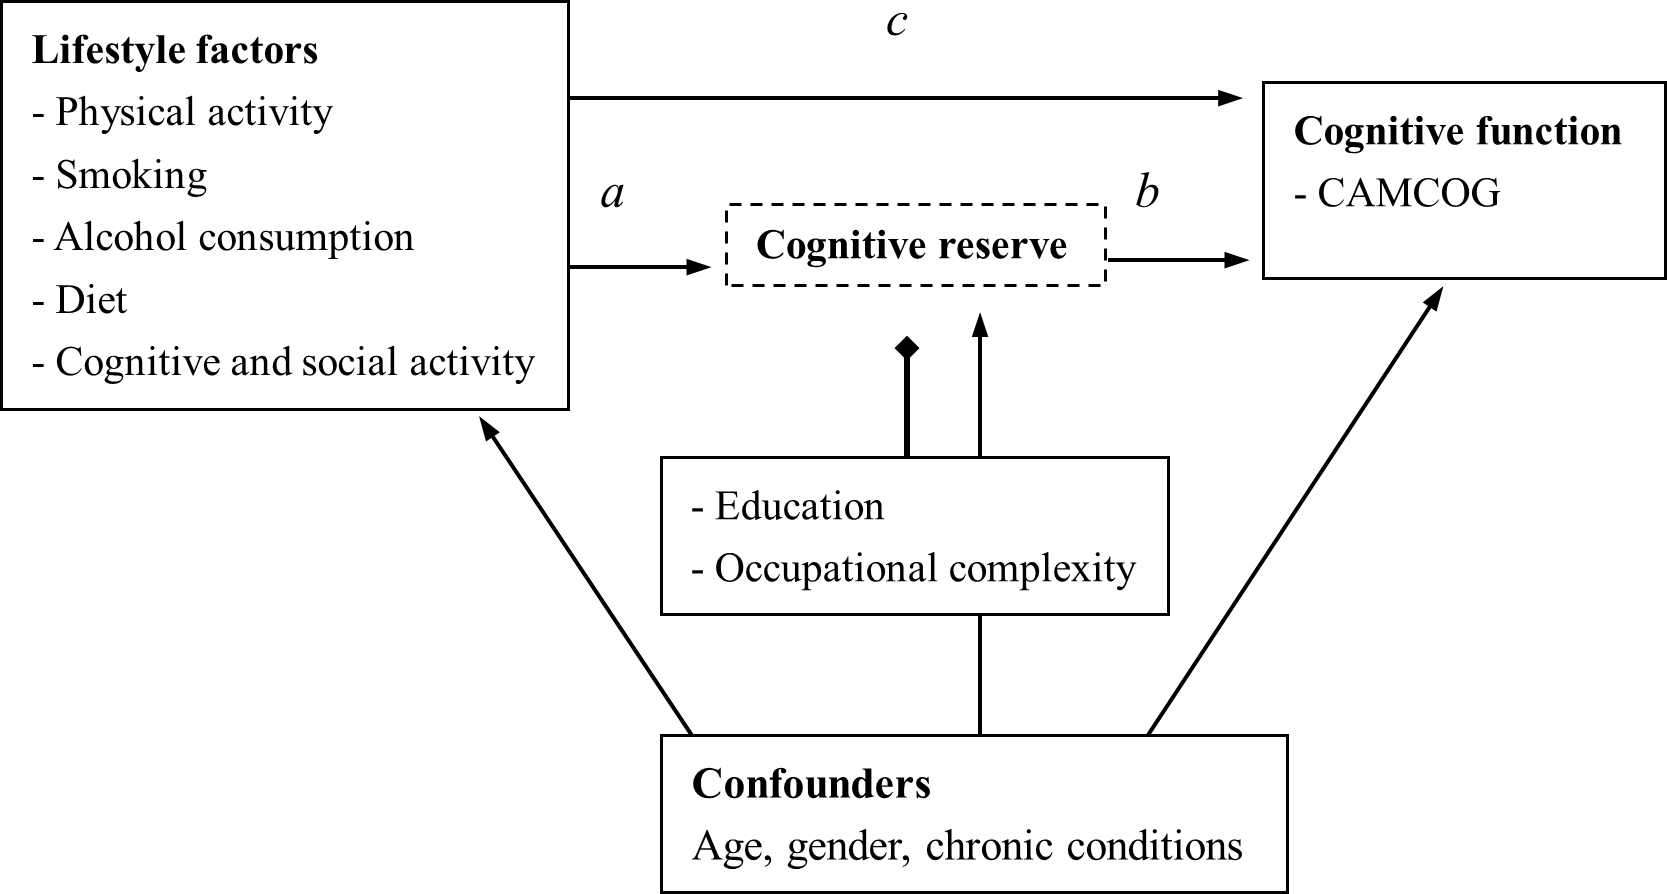 Mediating effect of cognitive reserve on the association between lifestyle factors and cognitive function.